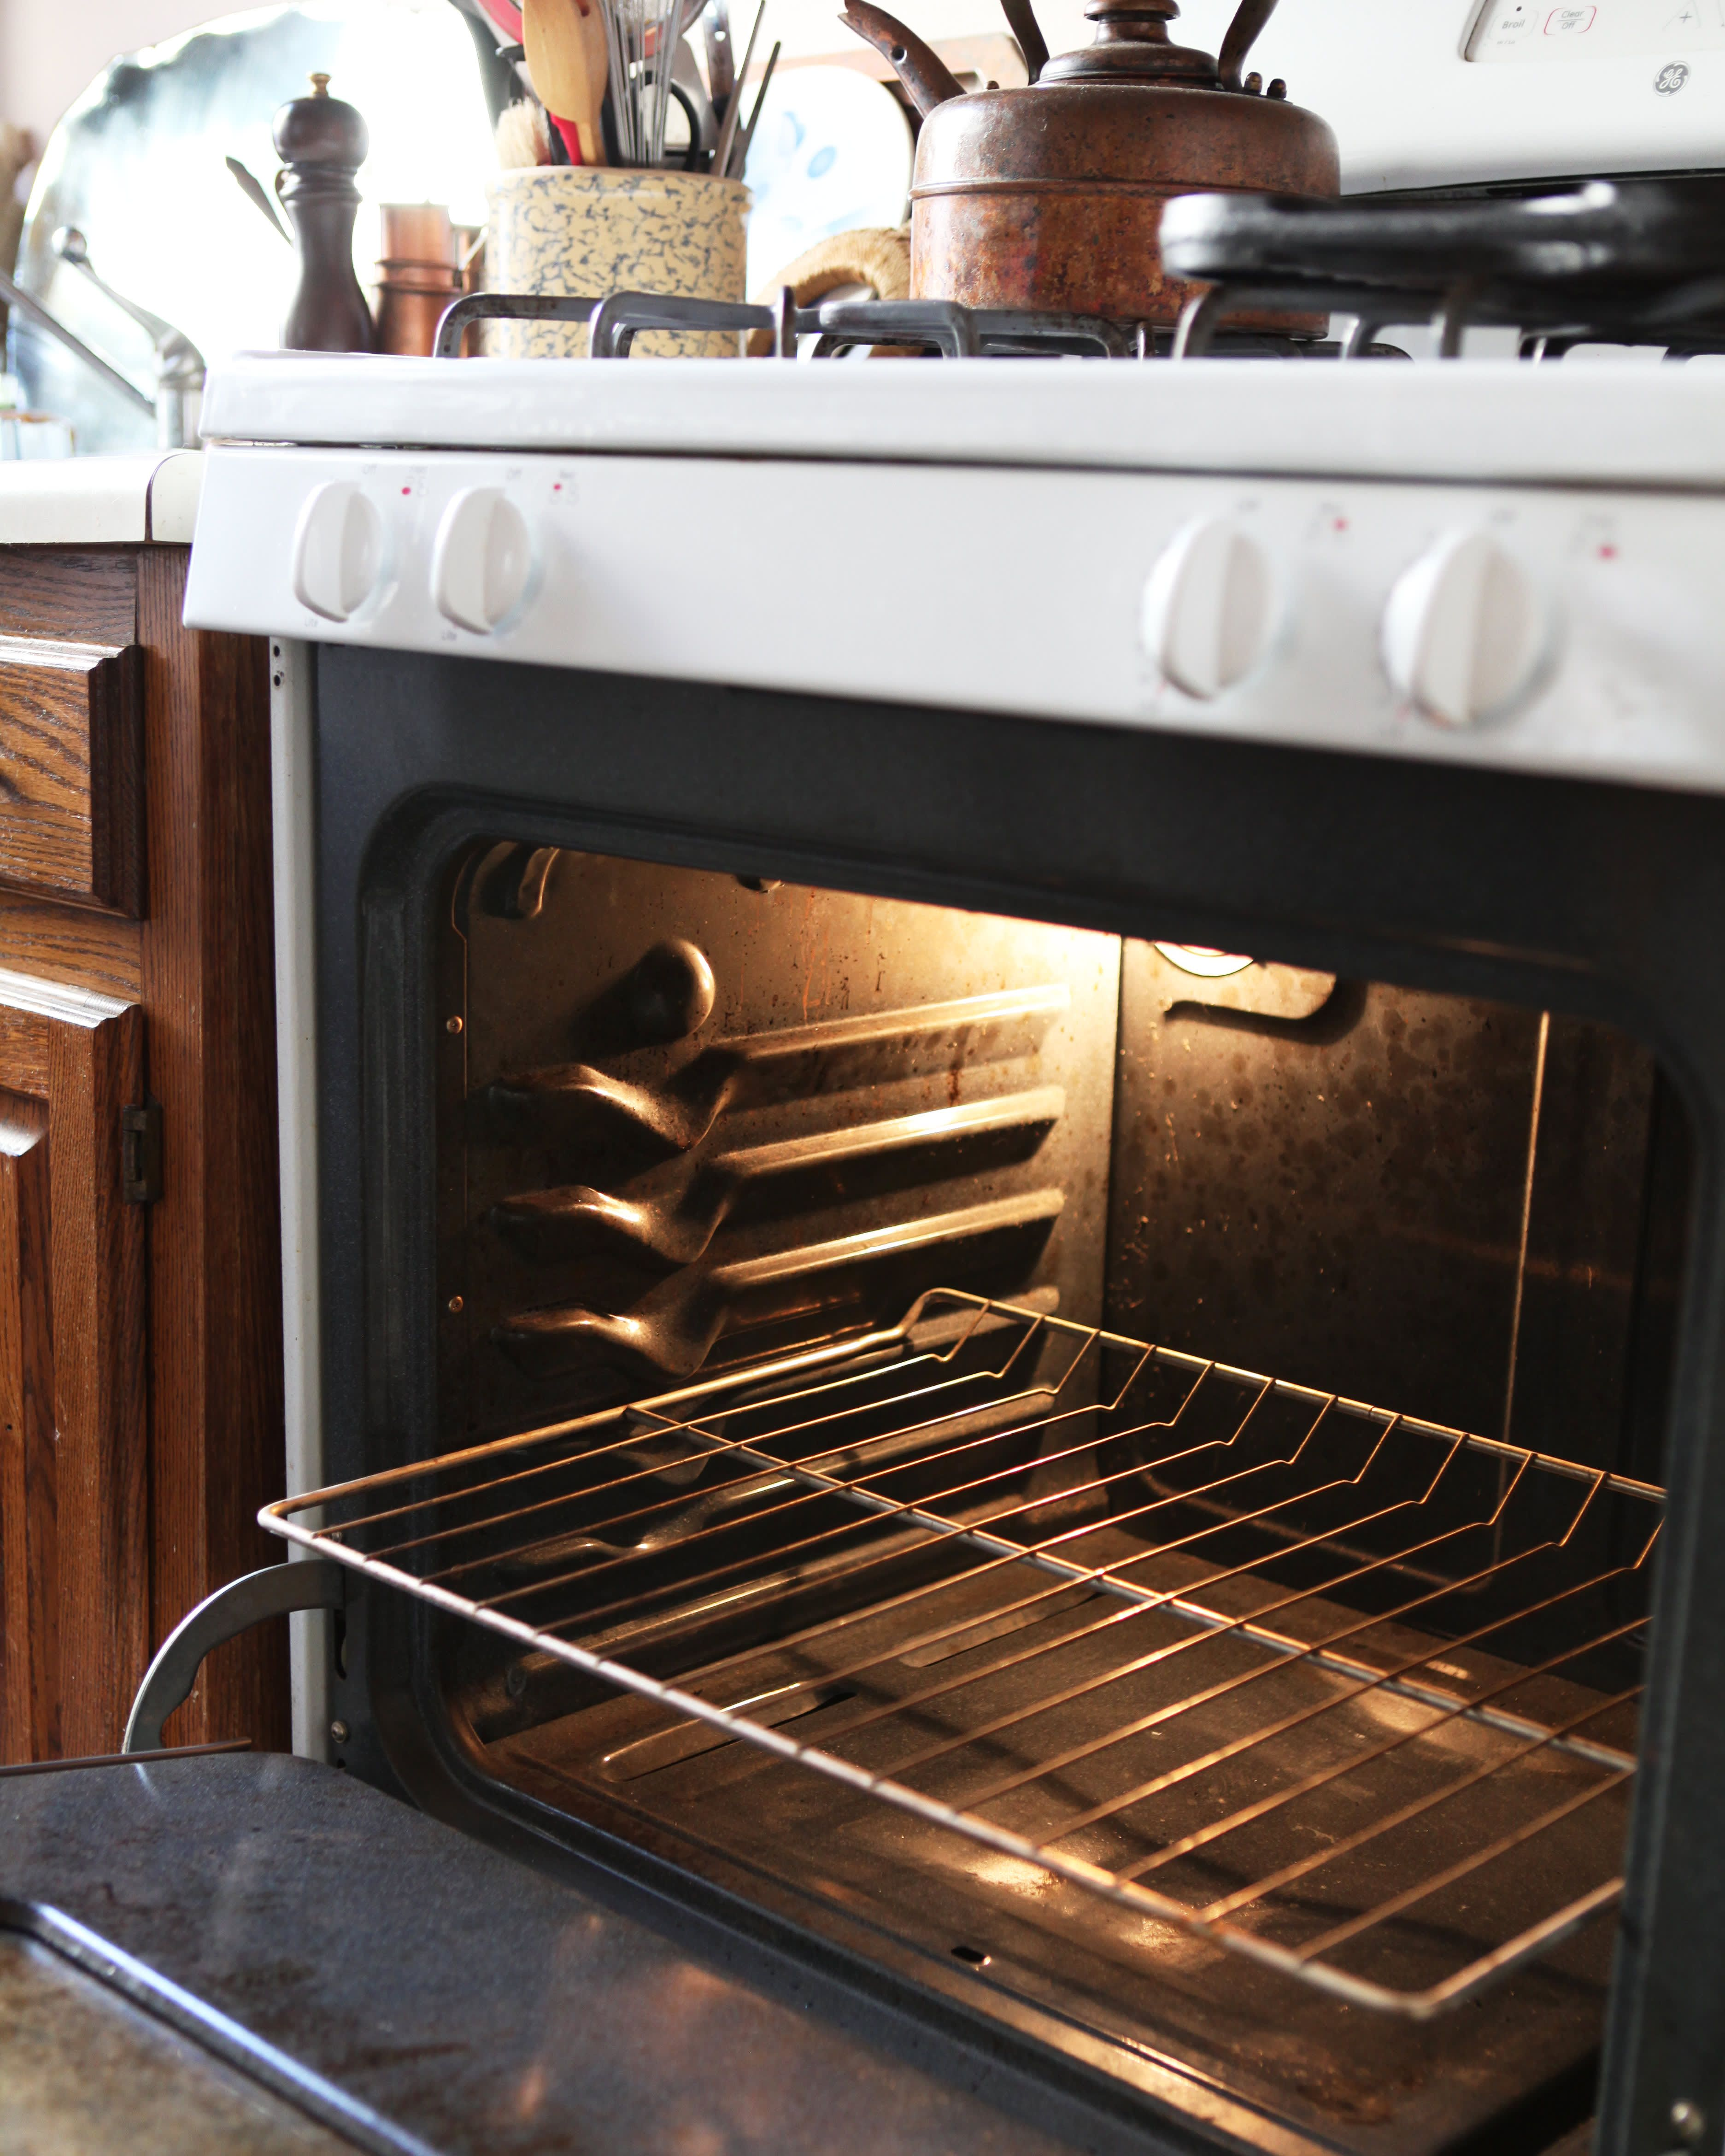 How To Clean An Oven With Baking Soda And Vinegar Oven Cleaning